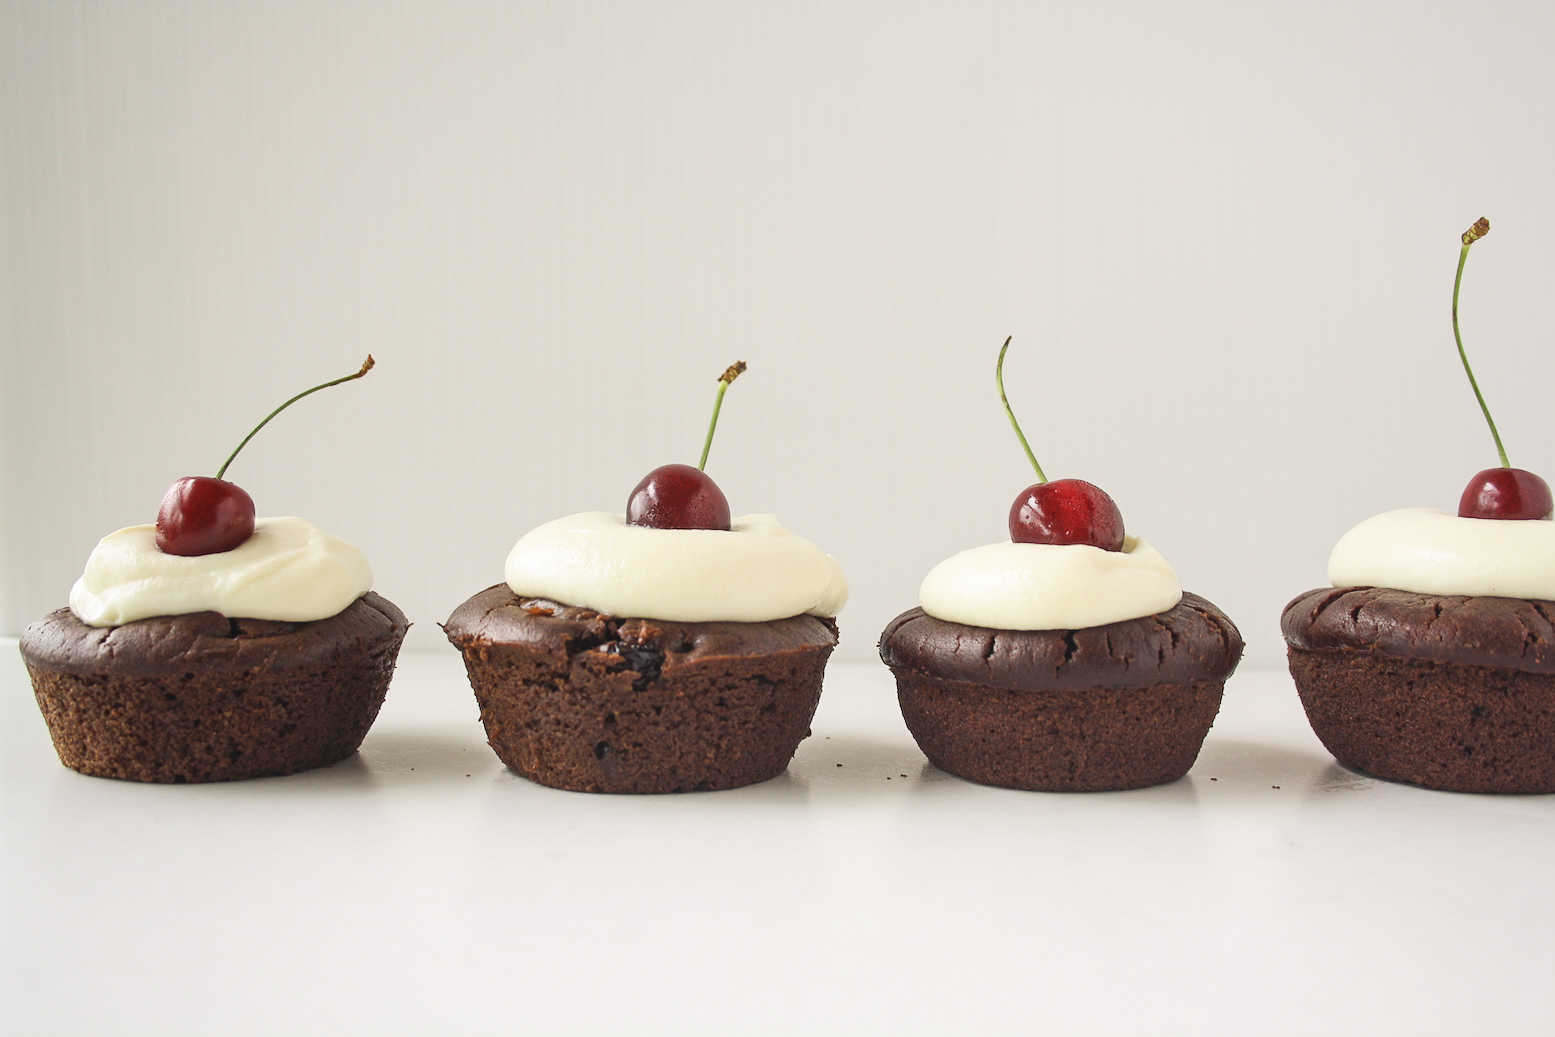 Rich, fudgy cakes filled with rum-soaked fresh cherries, served with a simple vanilla mascarpone topping!